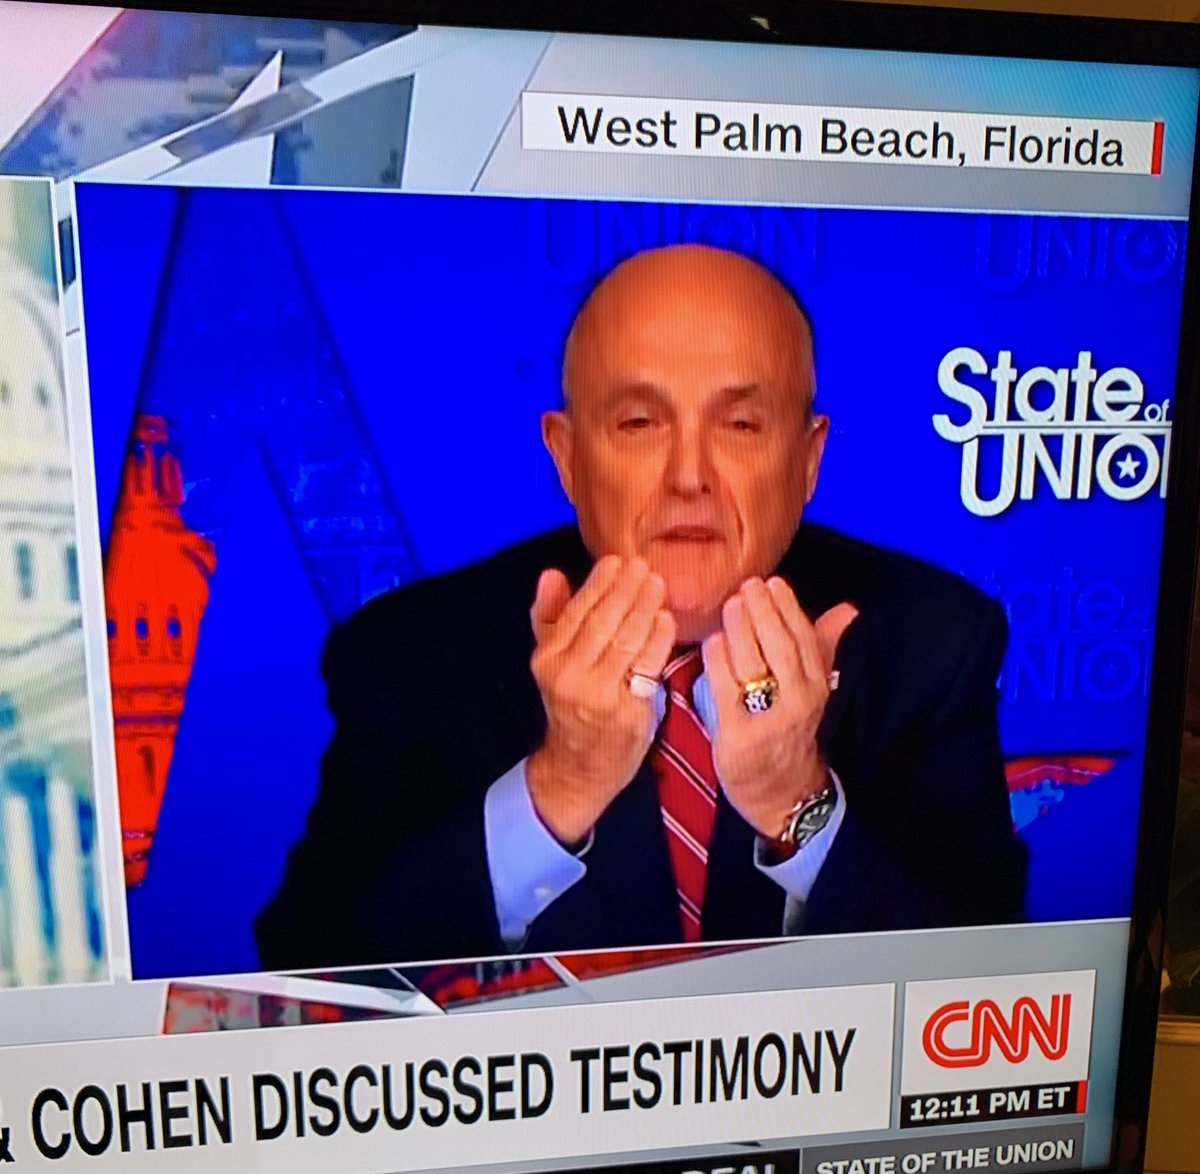 When Rudy finishes another Sunday morning session of digging a deeper hole for Trump, what do his Palm Beach brunch pals tell him? 'The rings looked dazzling!'